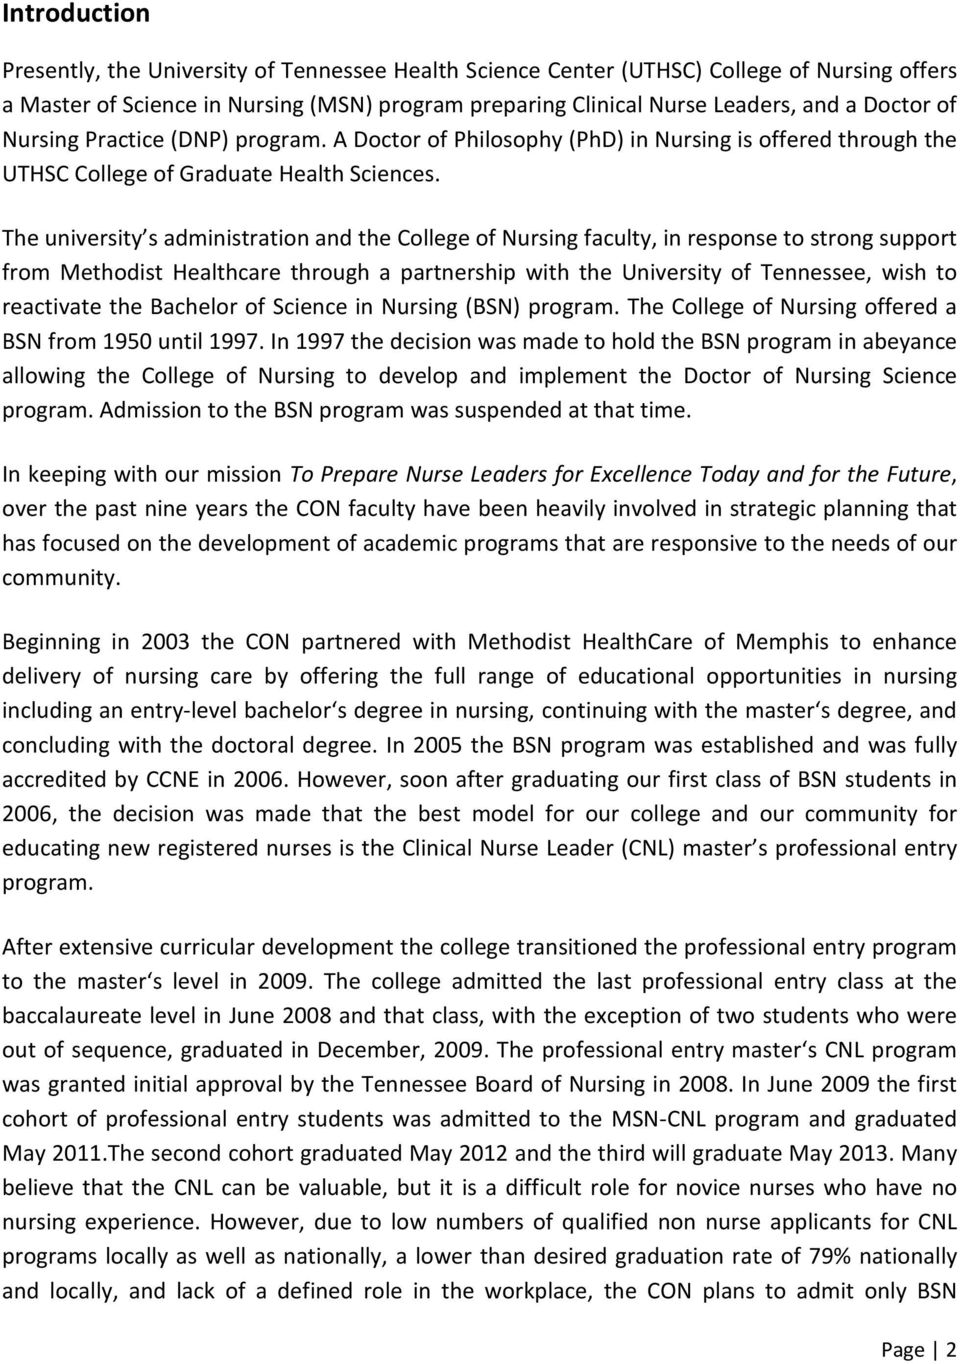 The university s administration and the College of Nursing faculty, in response to strong support from Methodist Healthcare through a partnership with the University of Tennessee, wish to reactivate